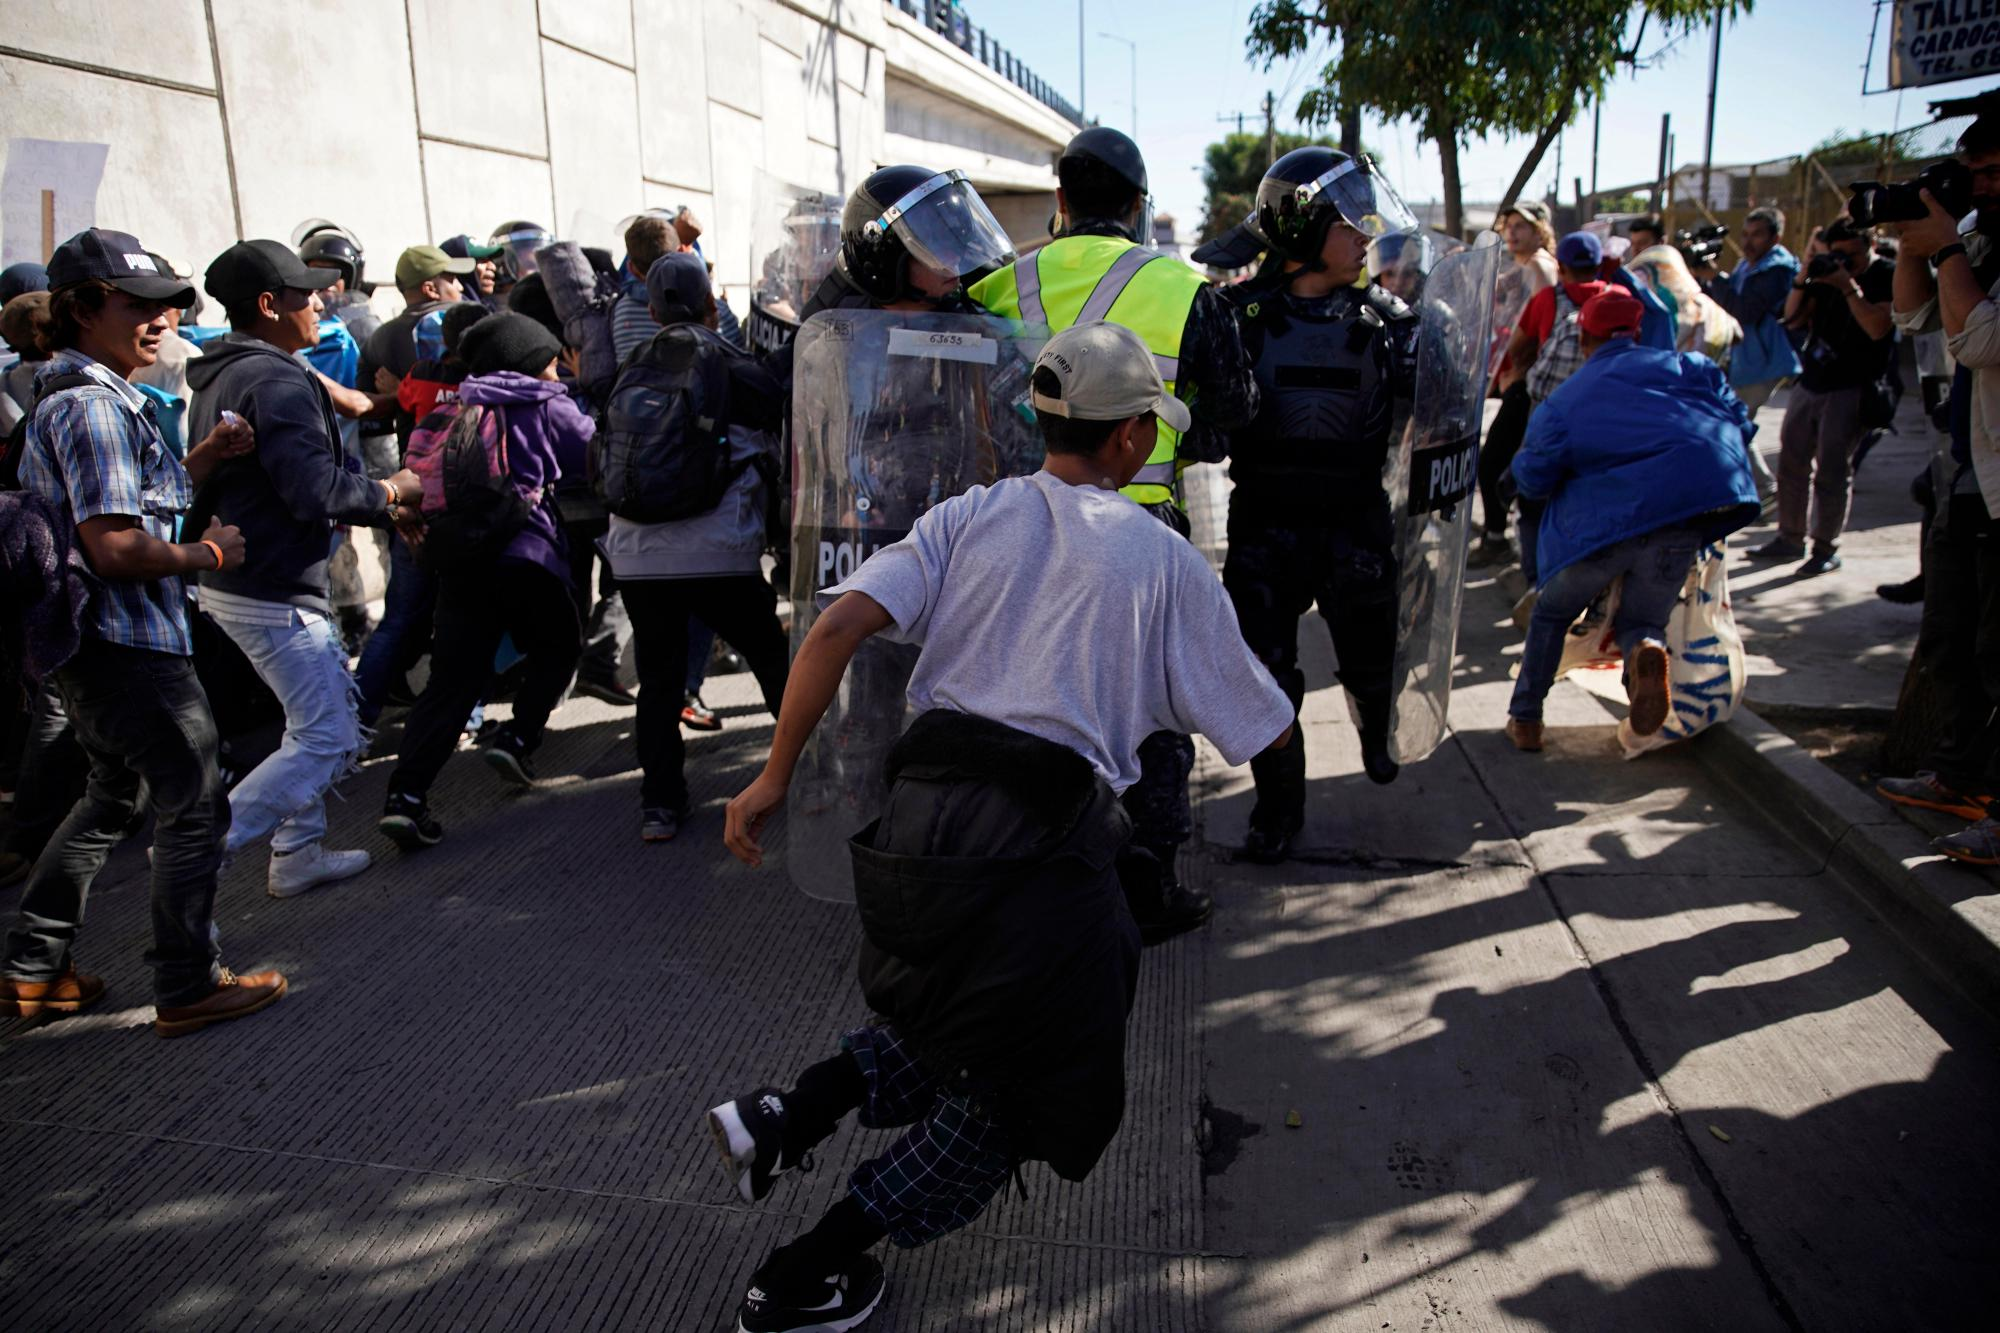 hight resolution of u s agents use tear gas as some migrants try to breach u s mexico border